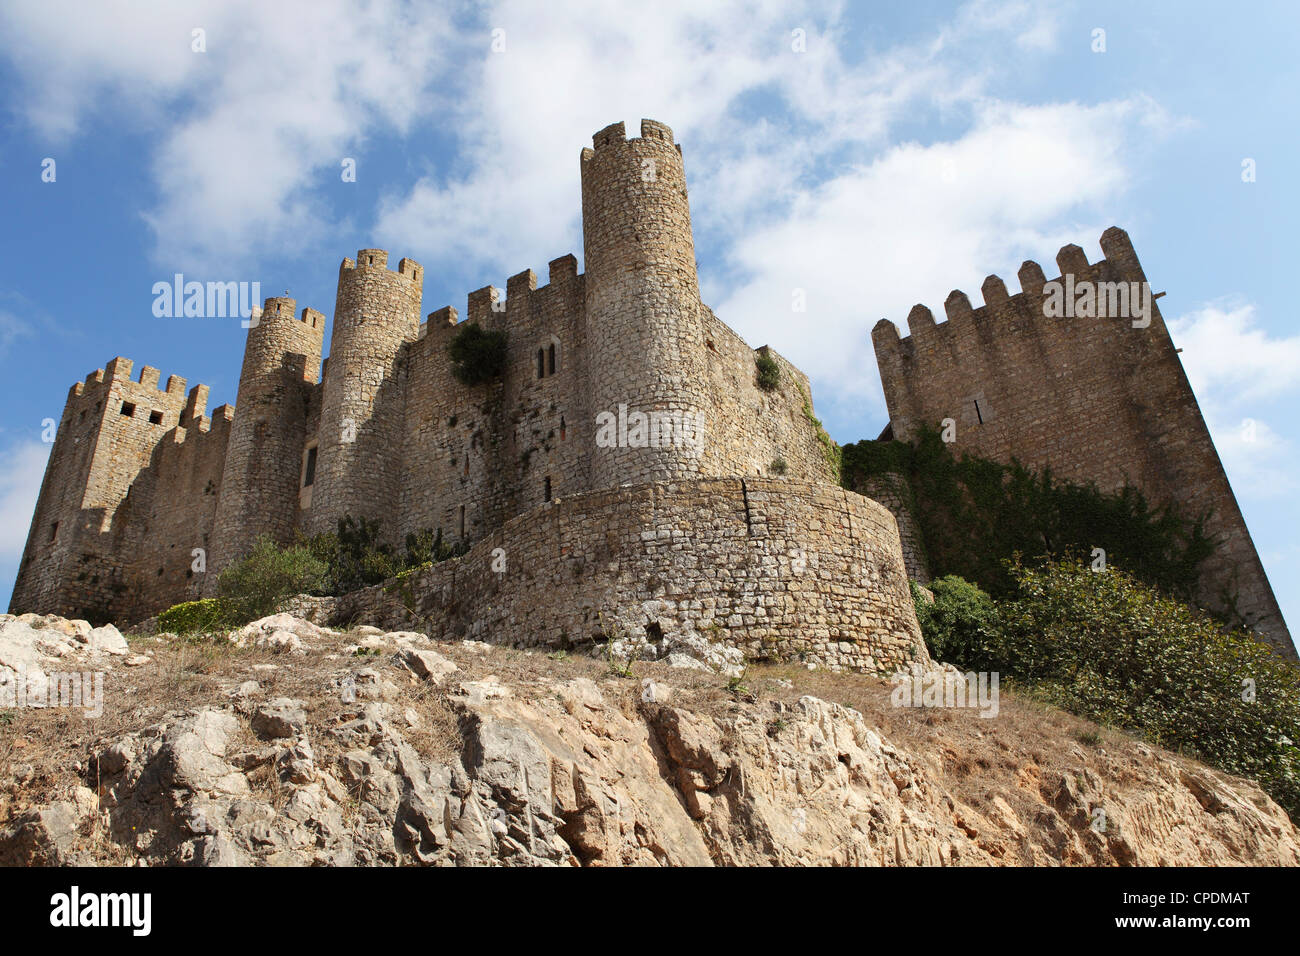 Obidos castle, a medieval forstress, today used as a luxury Pousada hotel, in Obidos, Estremadura, Portugal, Europe - Stock Image